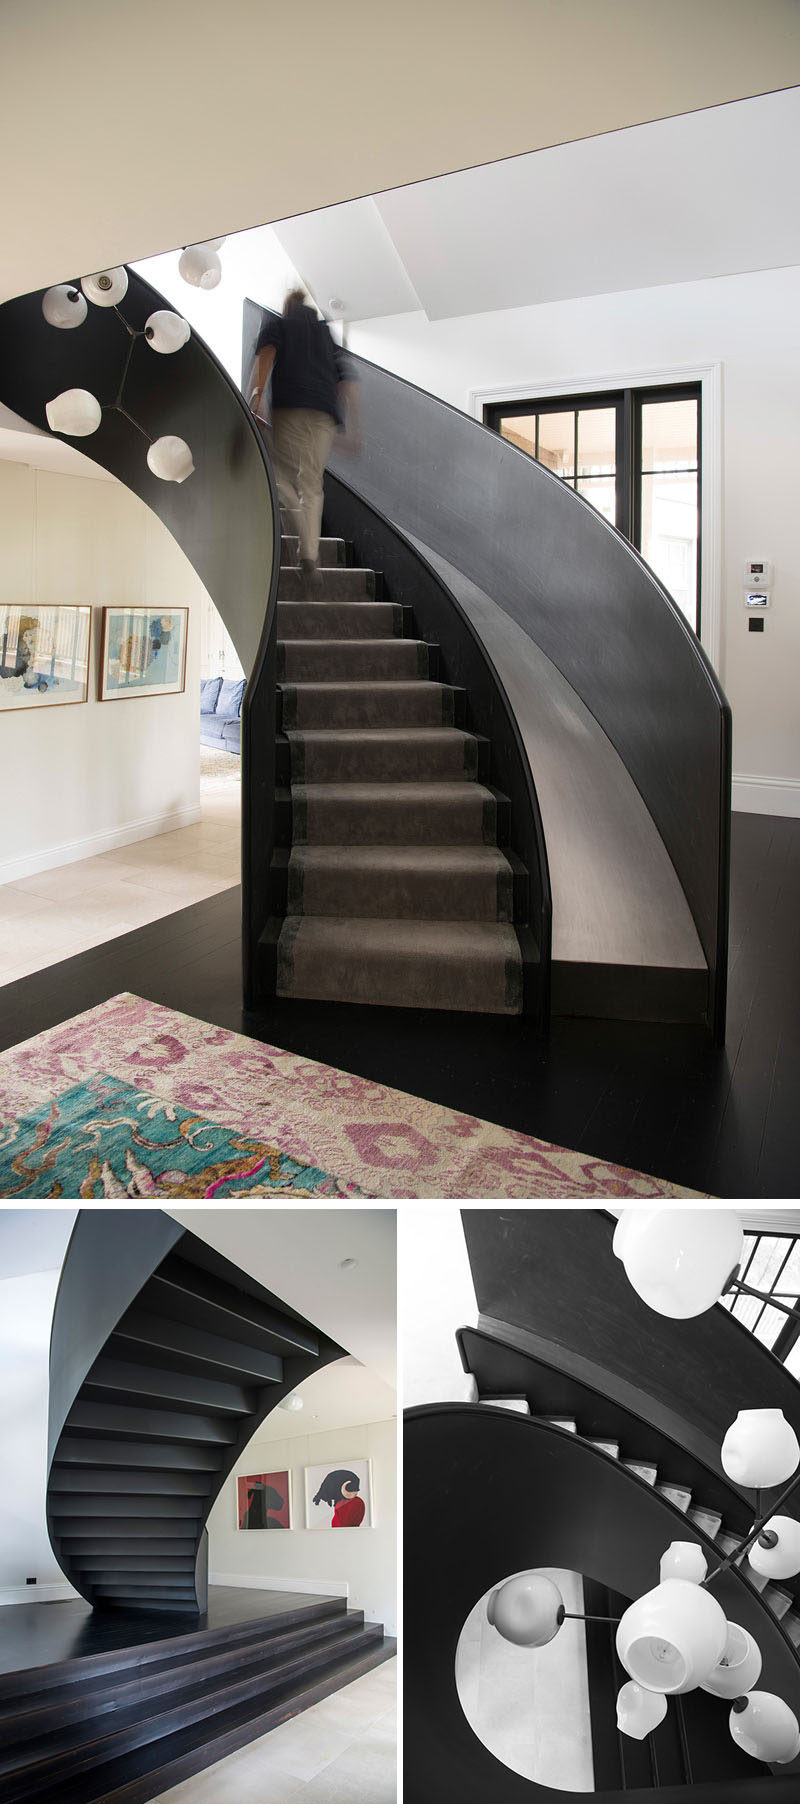 This modern house has a curved steel staircase with a slide that connects the main floor with the upper level, that's home tothe kids' bedrooms and a rumpus / playroom.#Stairs #StairsWithSlide #Staircase